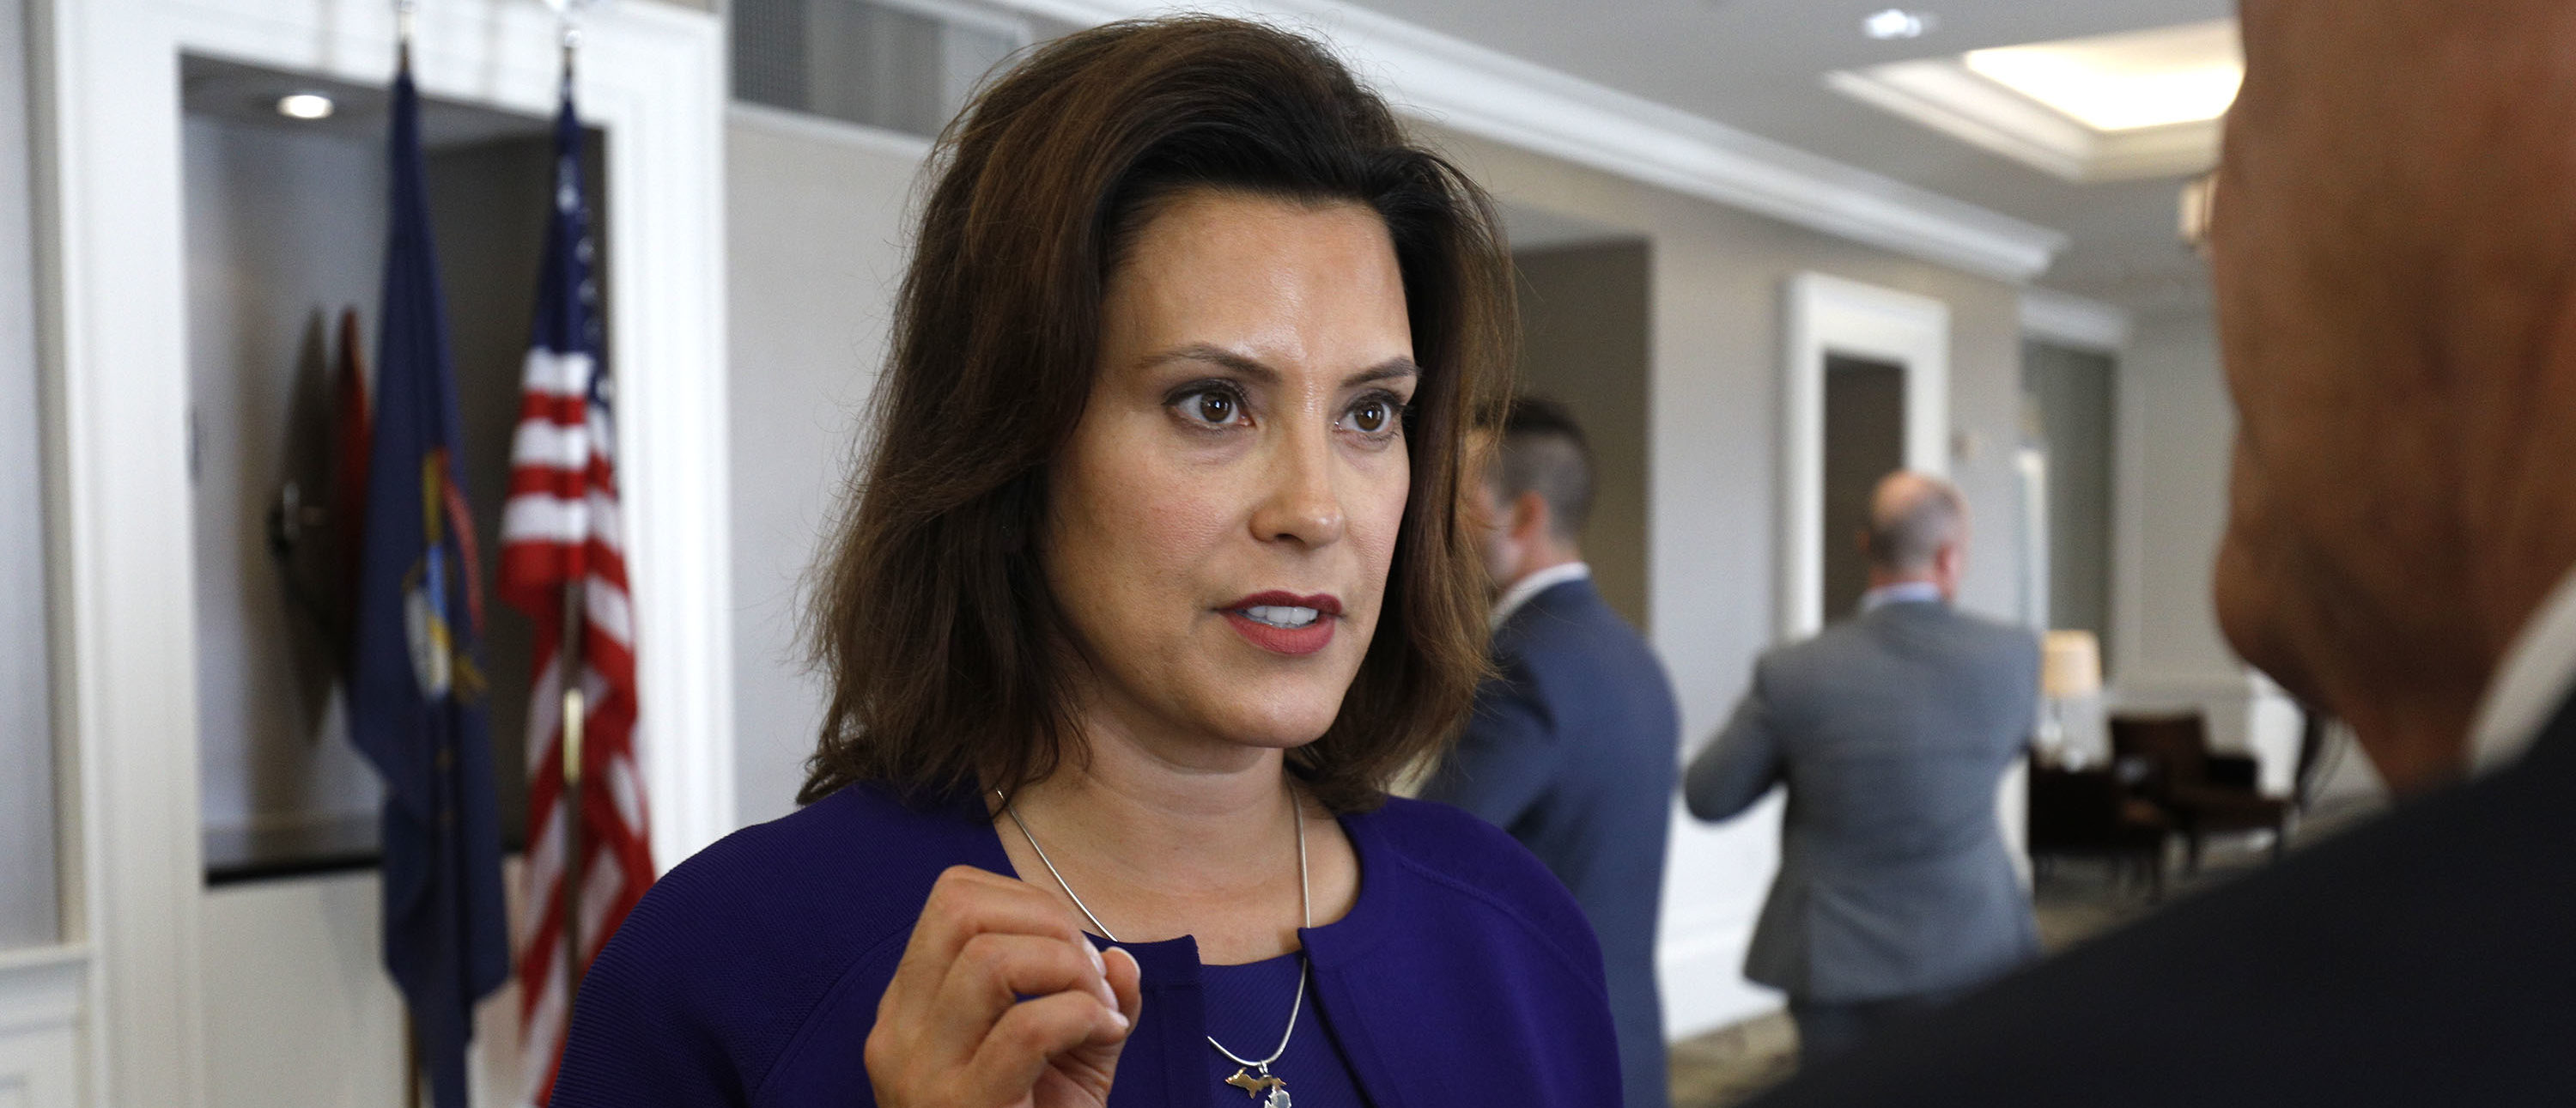 DETROIT, MI - AUGUST 8: Gretchen Whitmer, Michigan Democratic gubernatorial nominee, speaks with a reporter after a Democrat Unity Rally at the Westin Book Cadillac Hotel August 8, 2018 in Detroit, Michigan. Whitmer will face off against Republican gubernatorial nominee Bill Schuette in November. (Photo by Bill Pugliano/Getty Images)